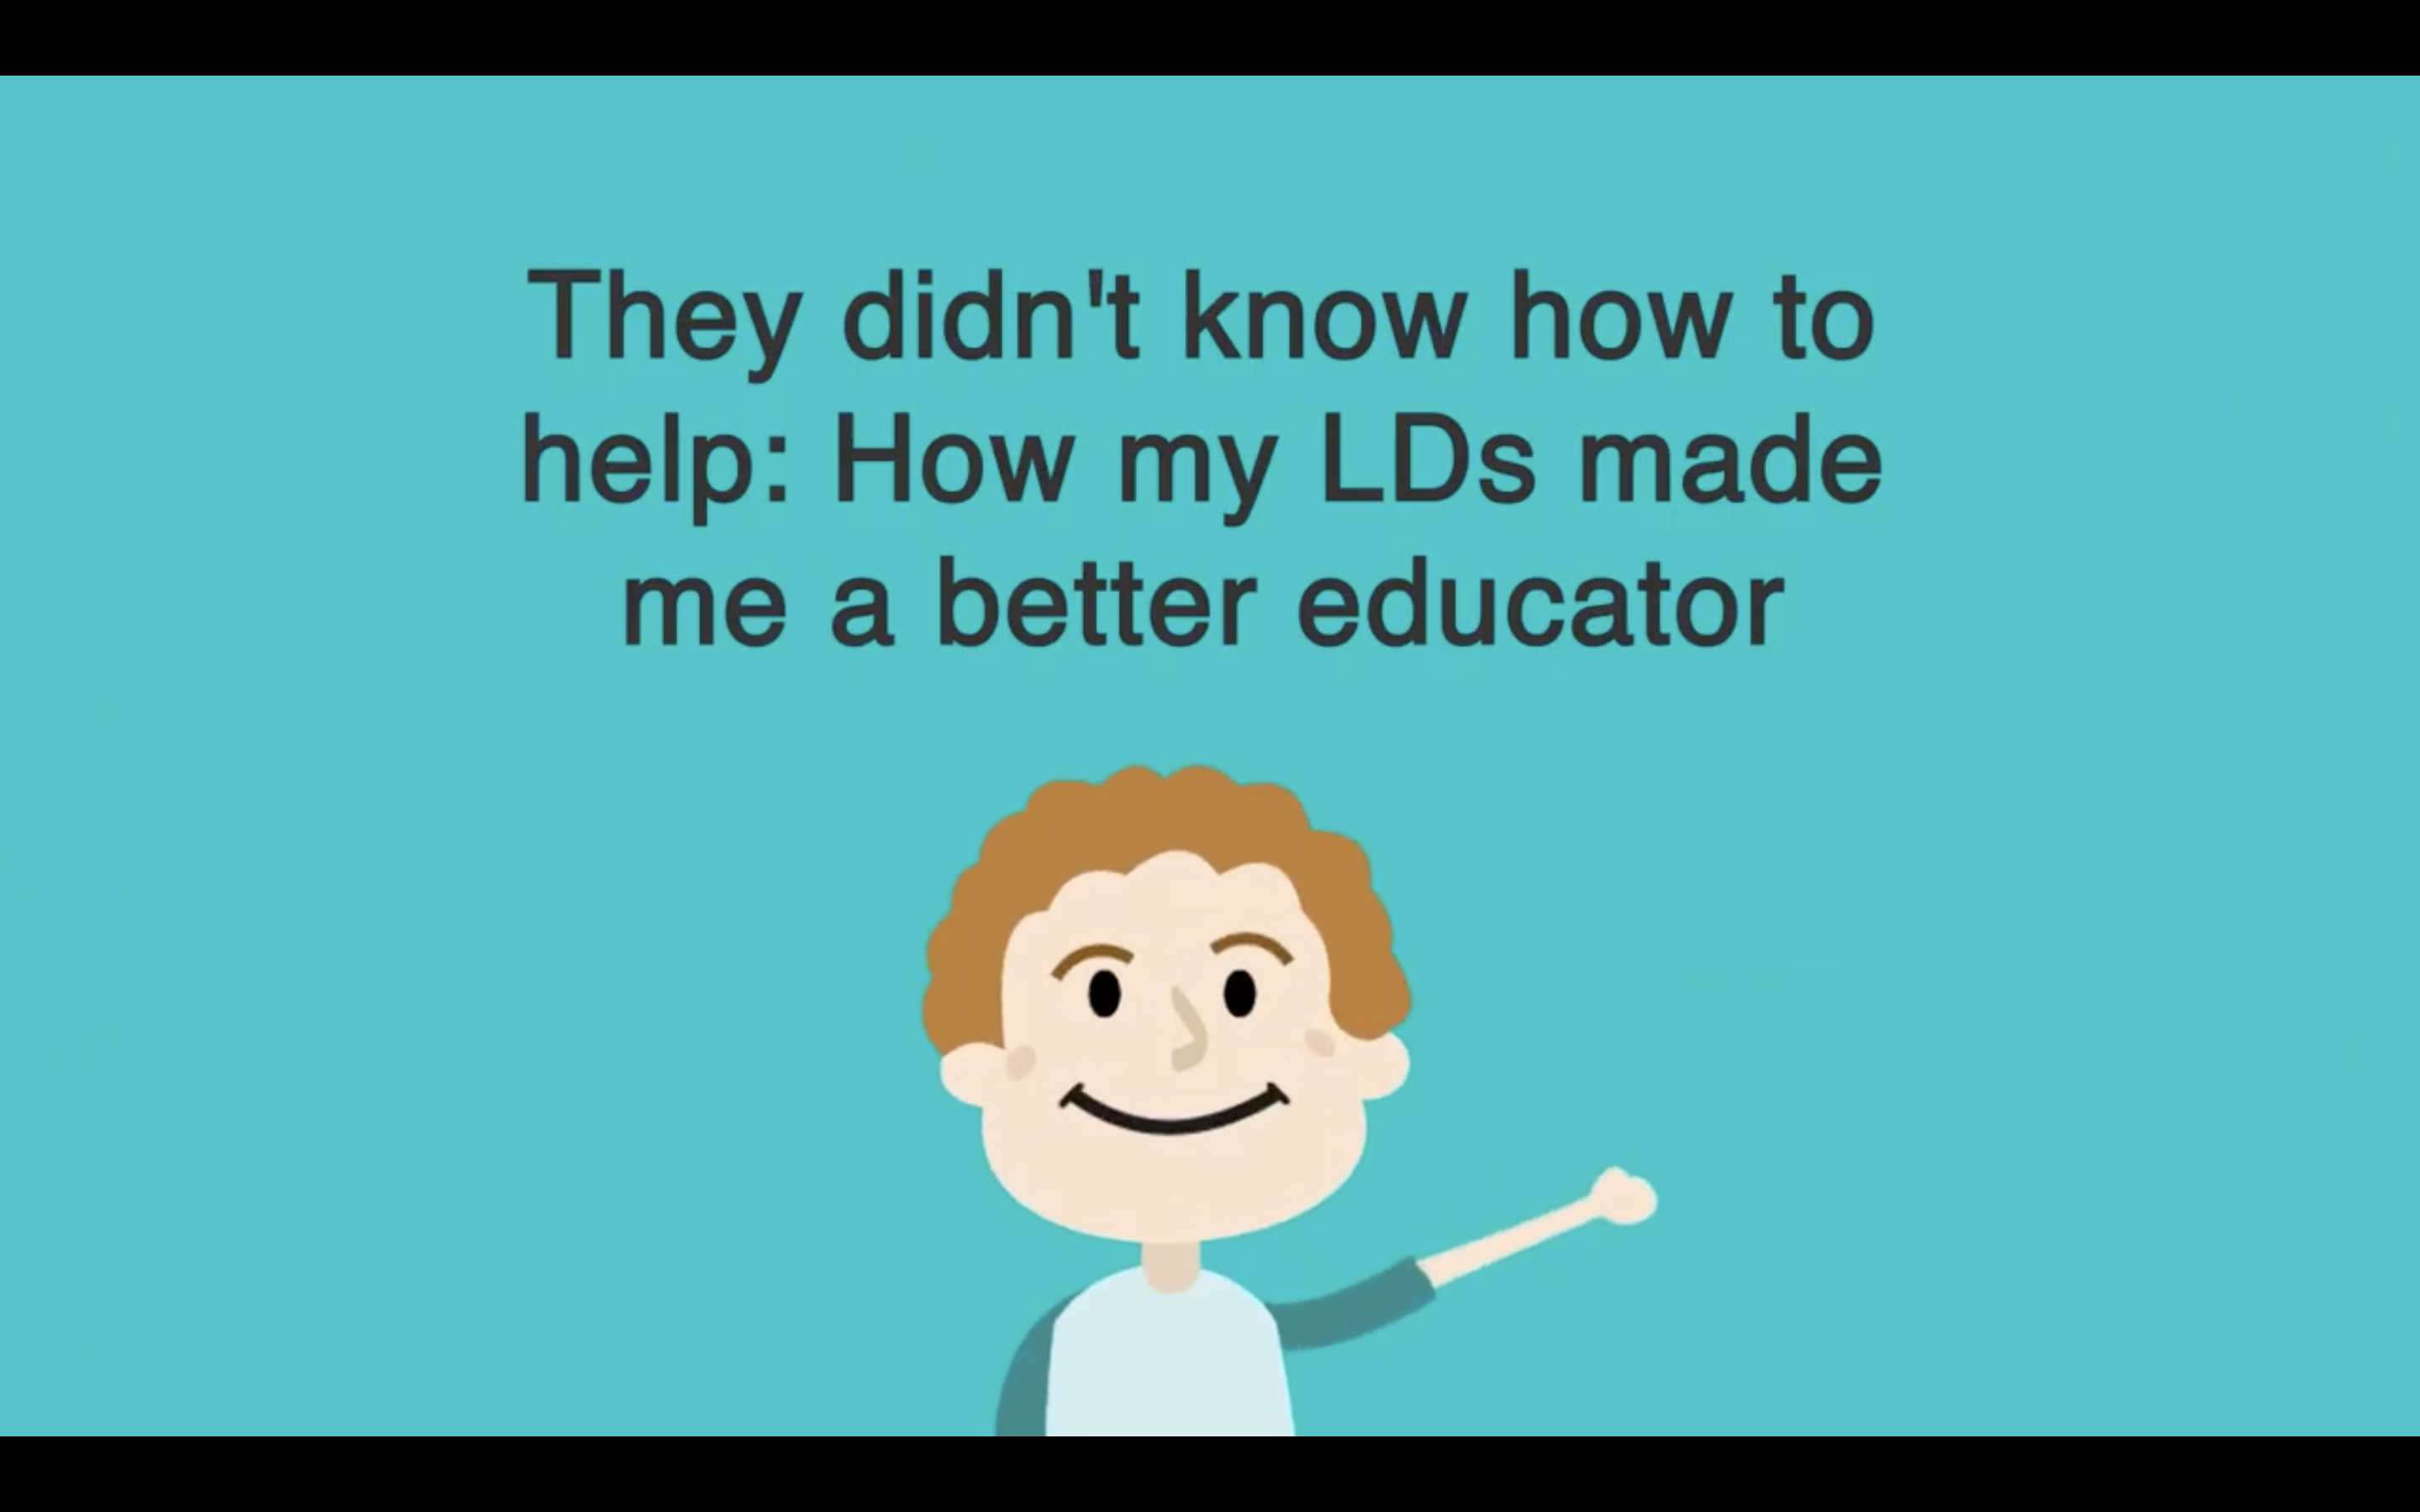 VIDEO: They didn't know how to help – How my LDs made me a better educator